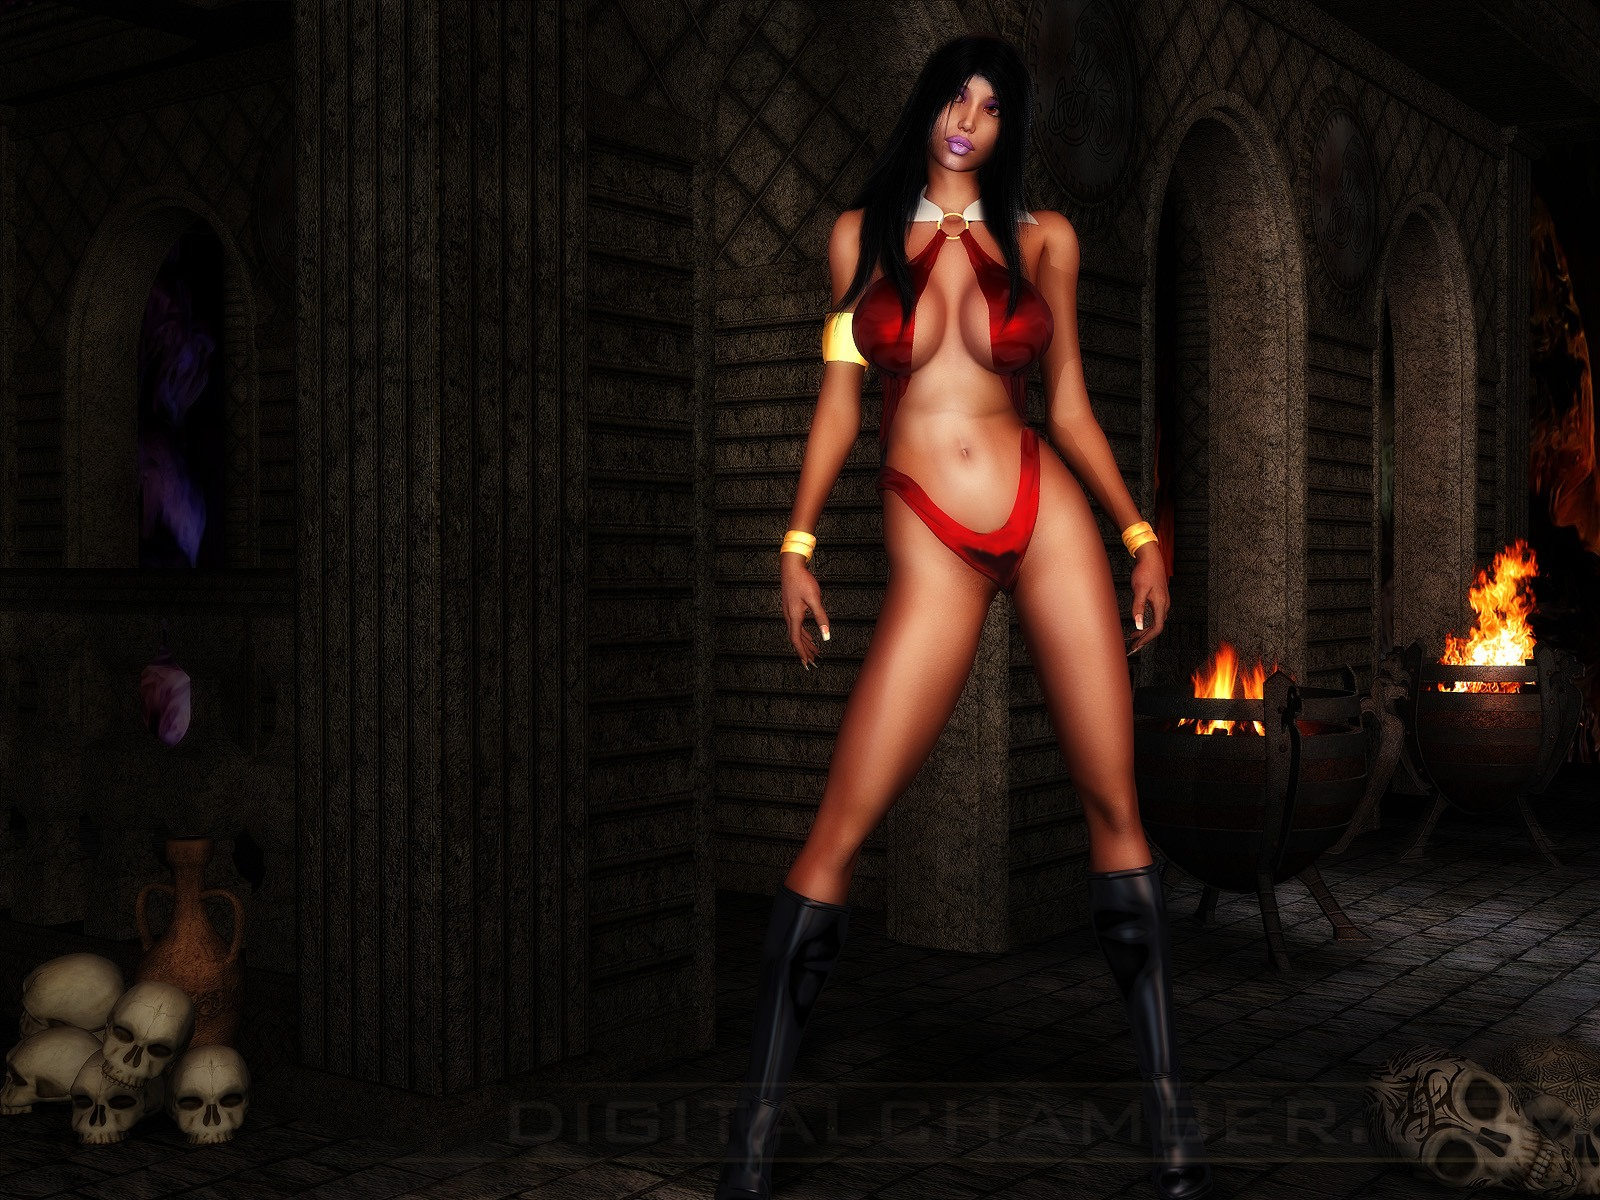 Naked vampire girls wallpaper adult photos